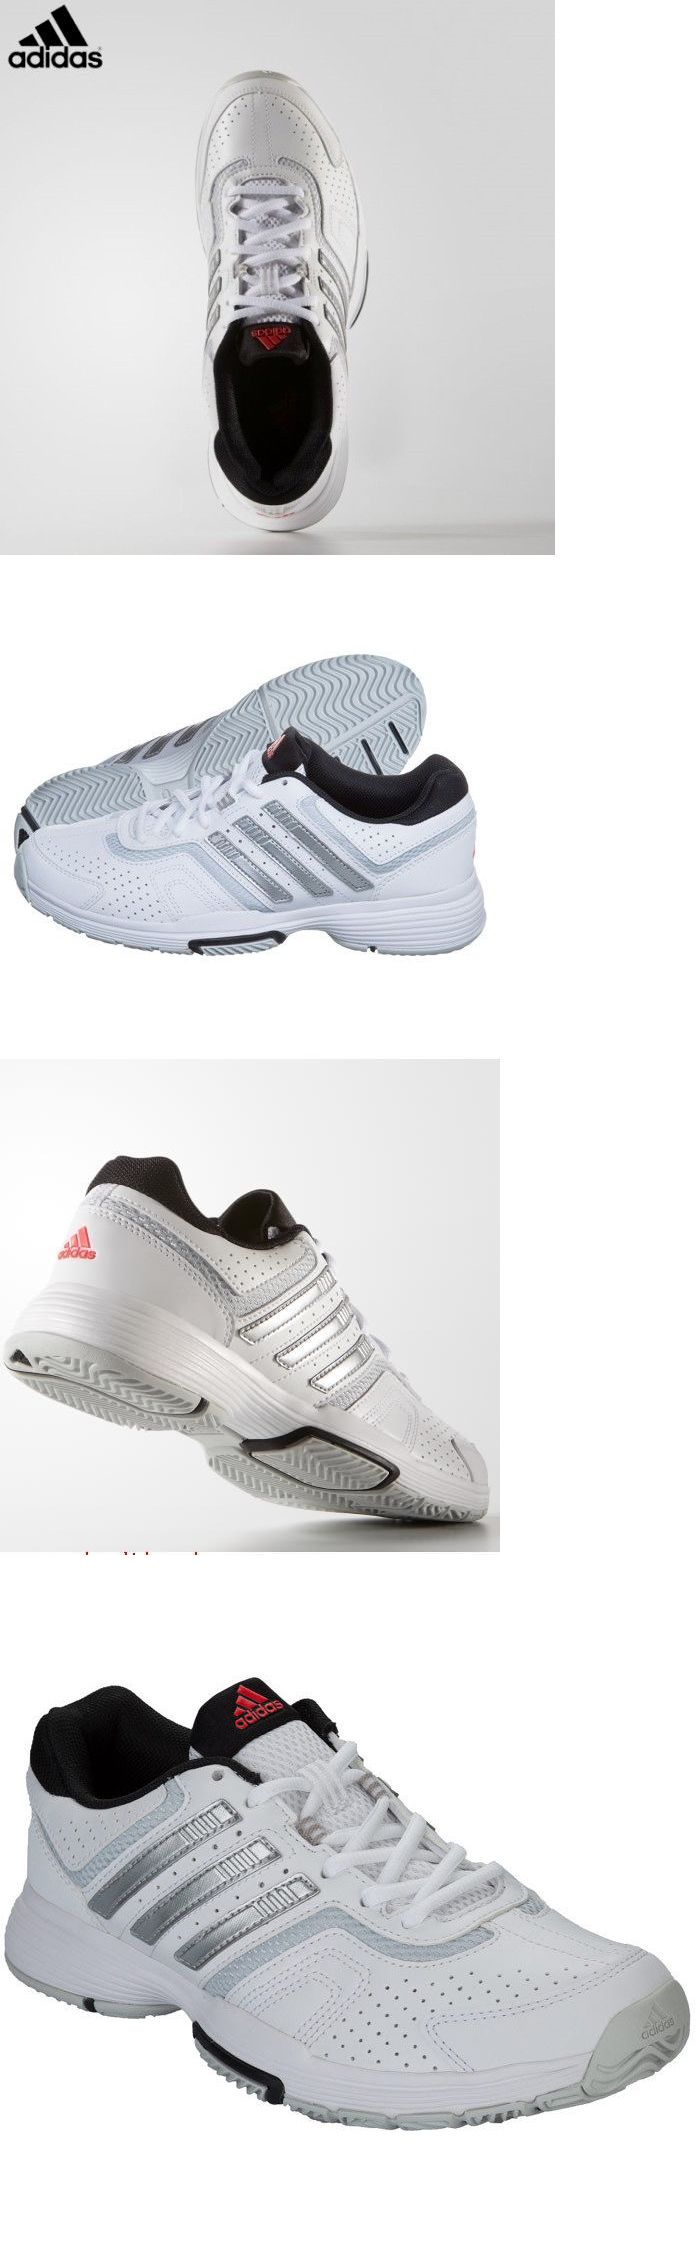 best authentic fd978 9ac0d Clothing Shoes and Accessories 62229  New-In-Box Adidas Women Barricade  Court 2 Tennis Shoes White Sz 6 Running Gym -  BUY IT NOW ONLY   35.99 on   eBay ...